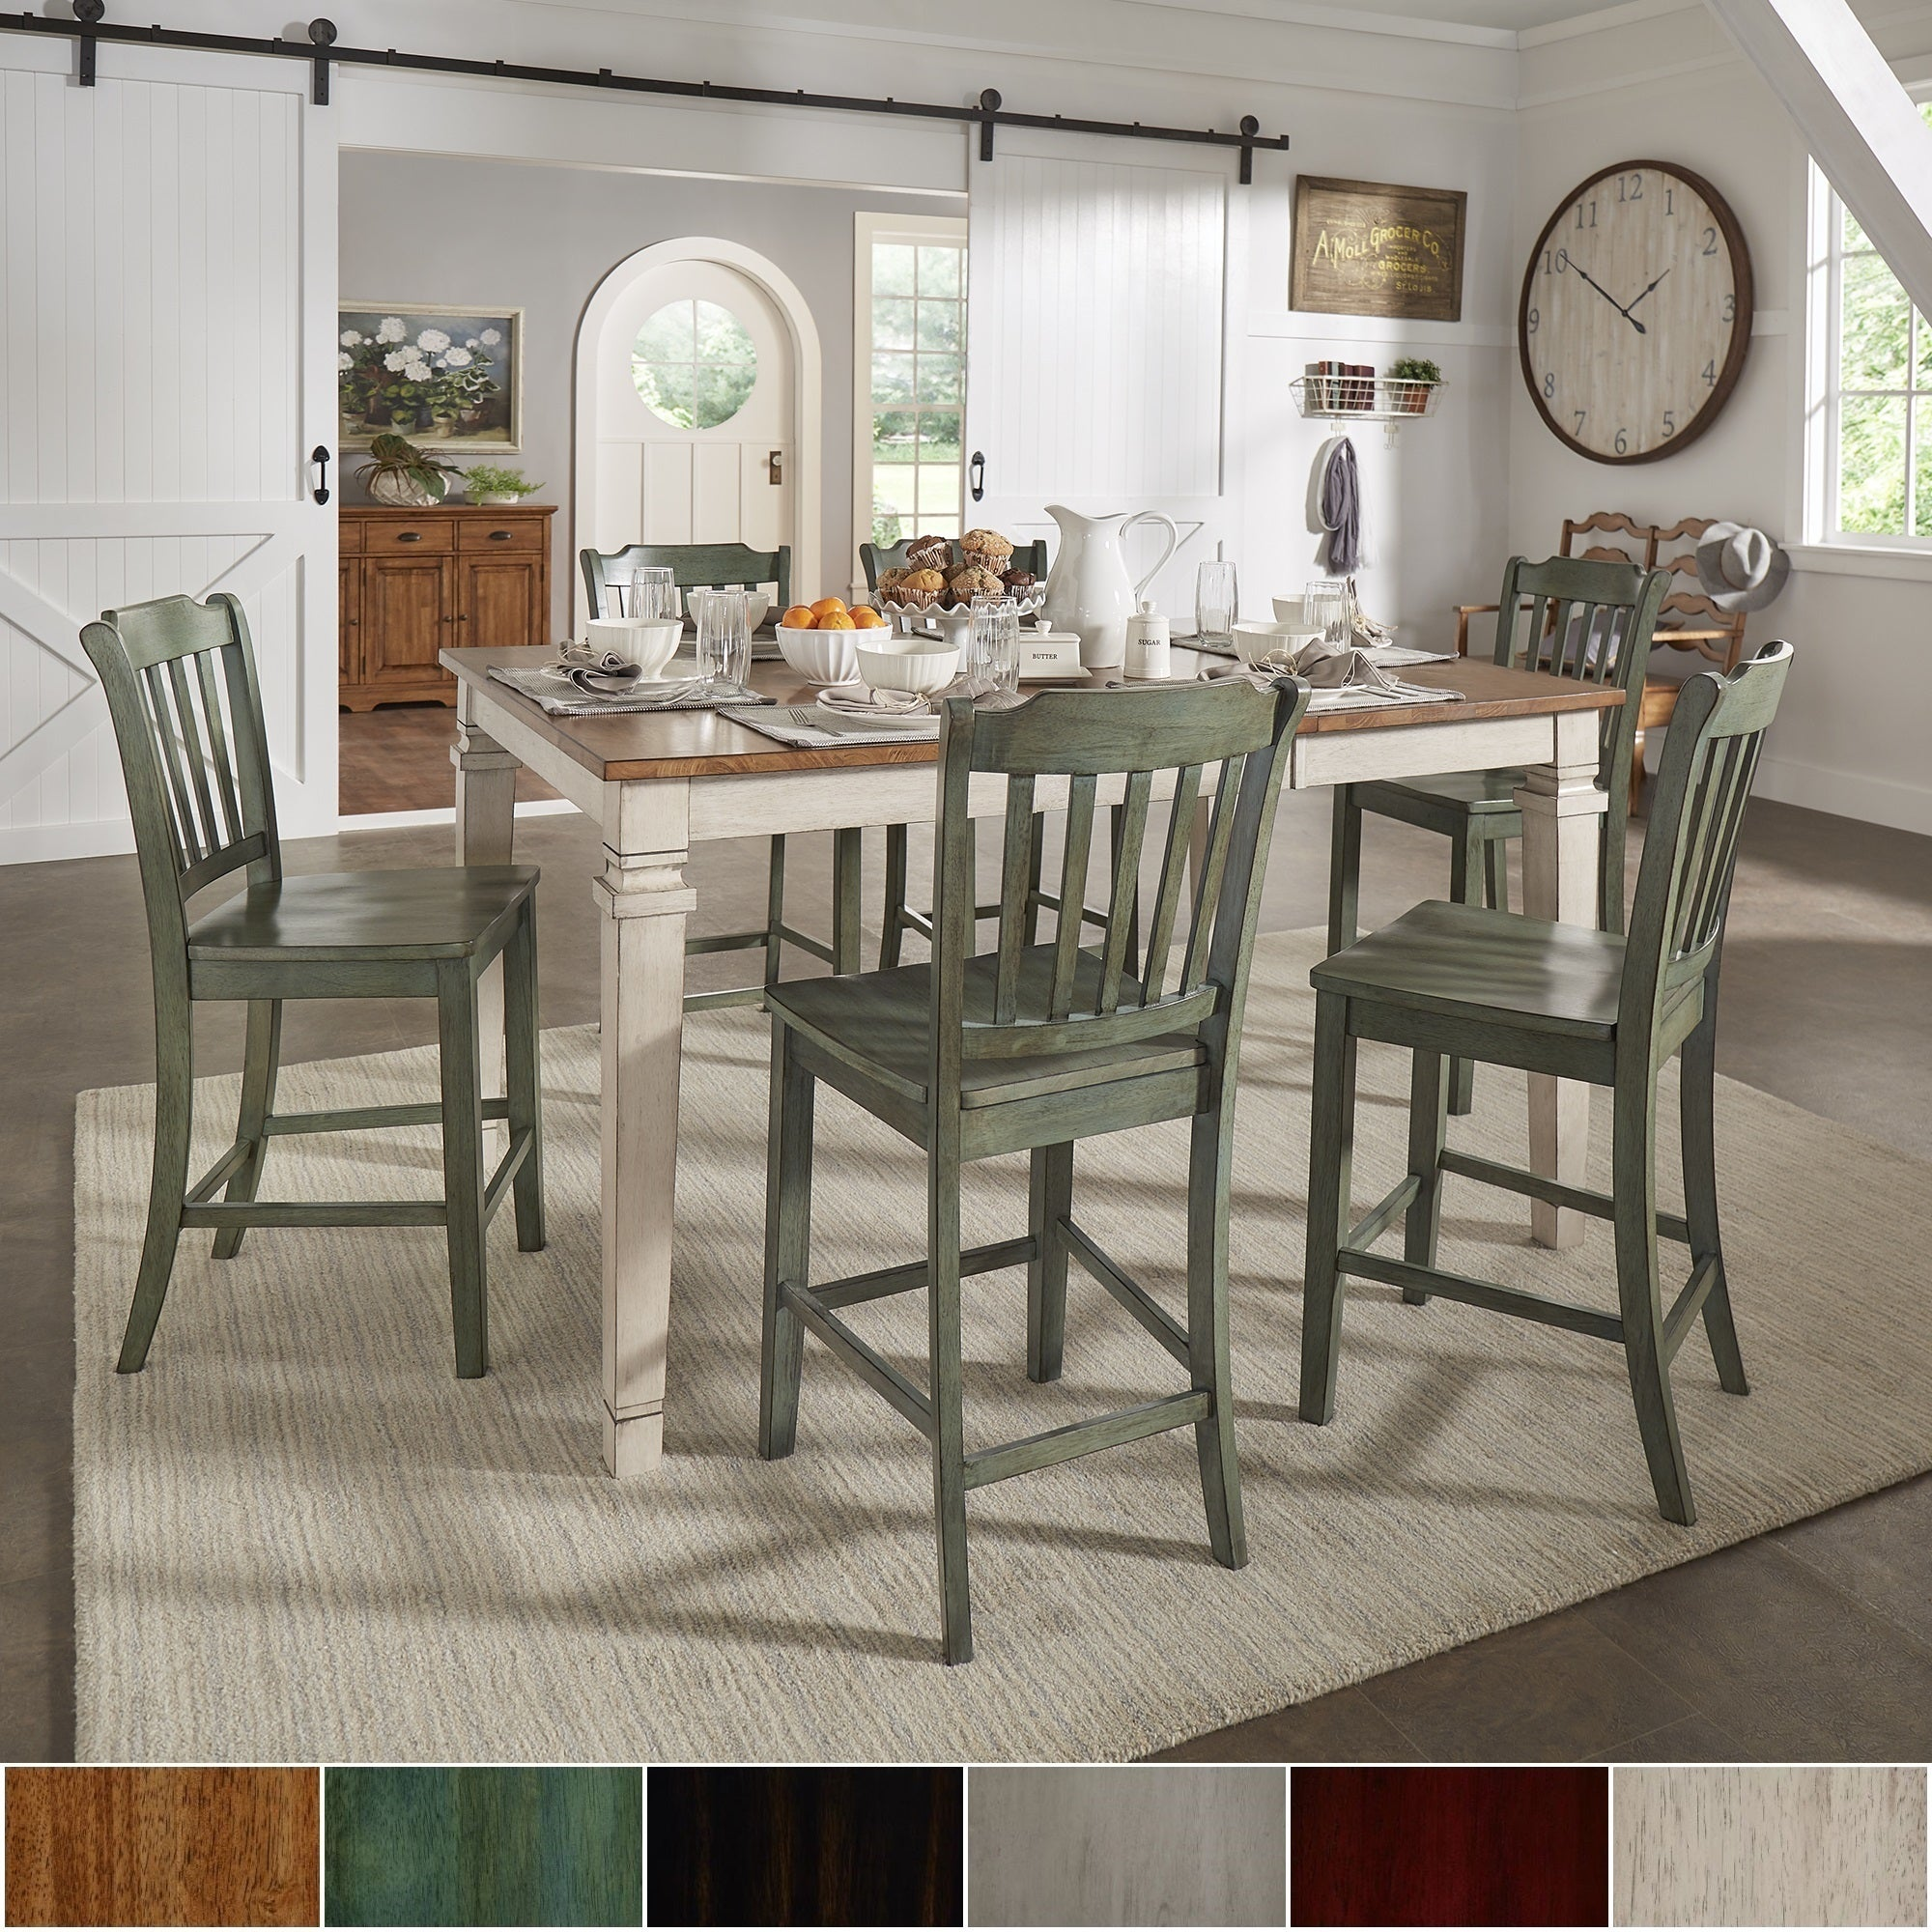 Elena Antique White Extendable Counter Height Dining Set - Slat Back from  iNSPIRE Q Classic - Free Shipping Today - Overstock.com - 24628909